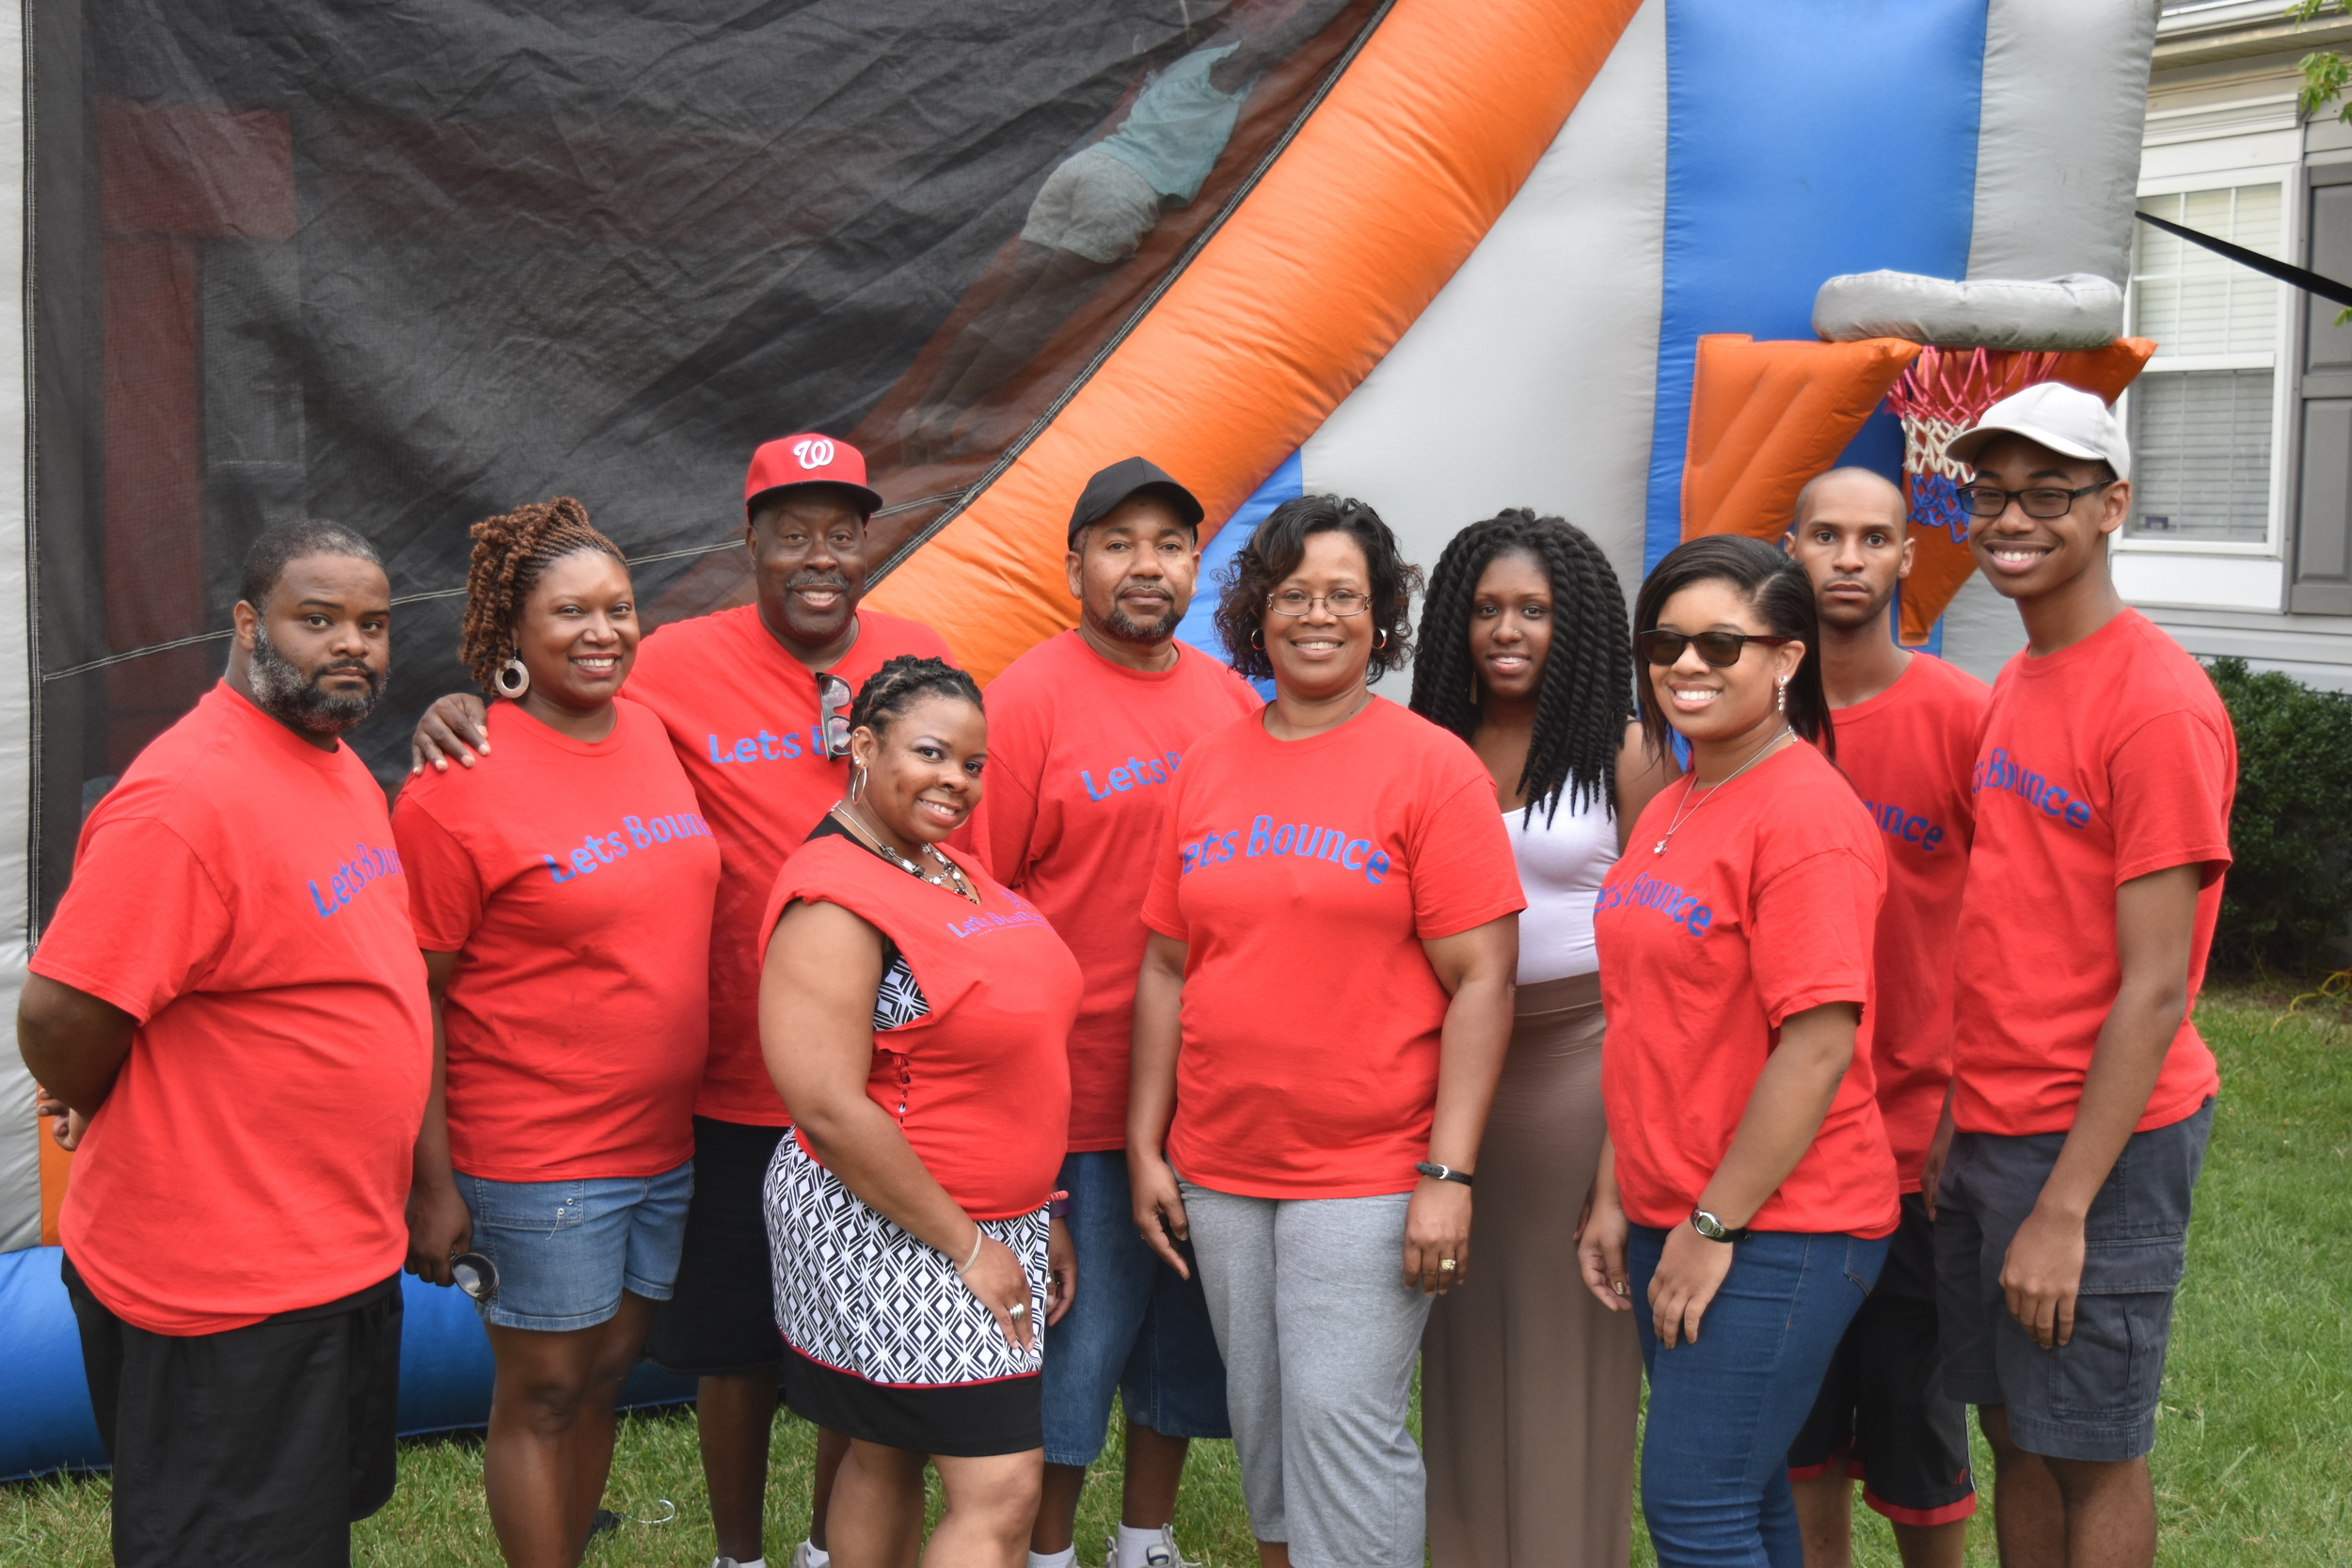 Group employee photo of DMV based Let's Bounce, LLC moonbounce company.